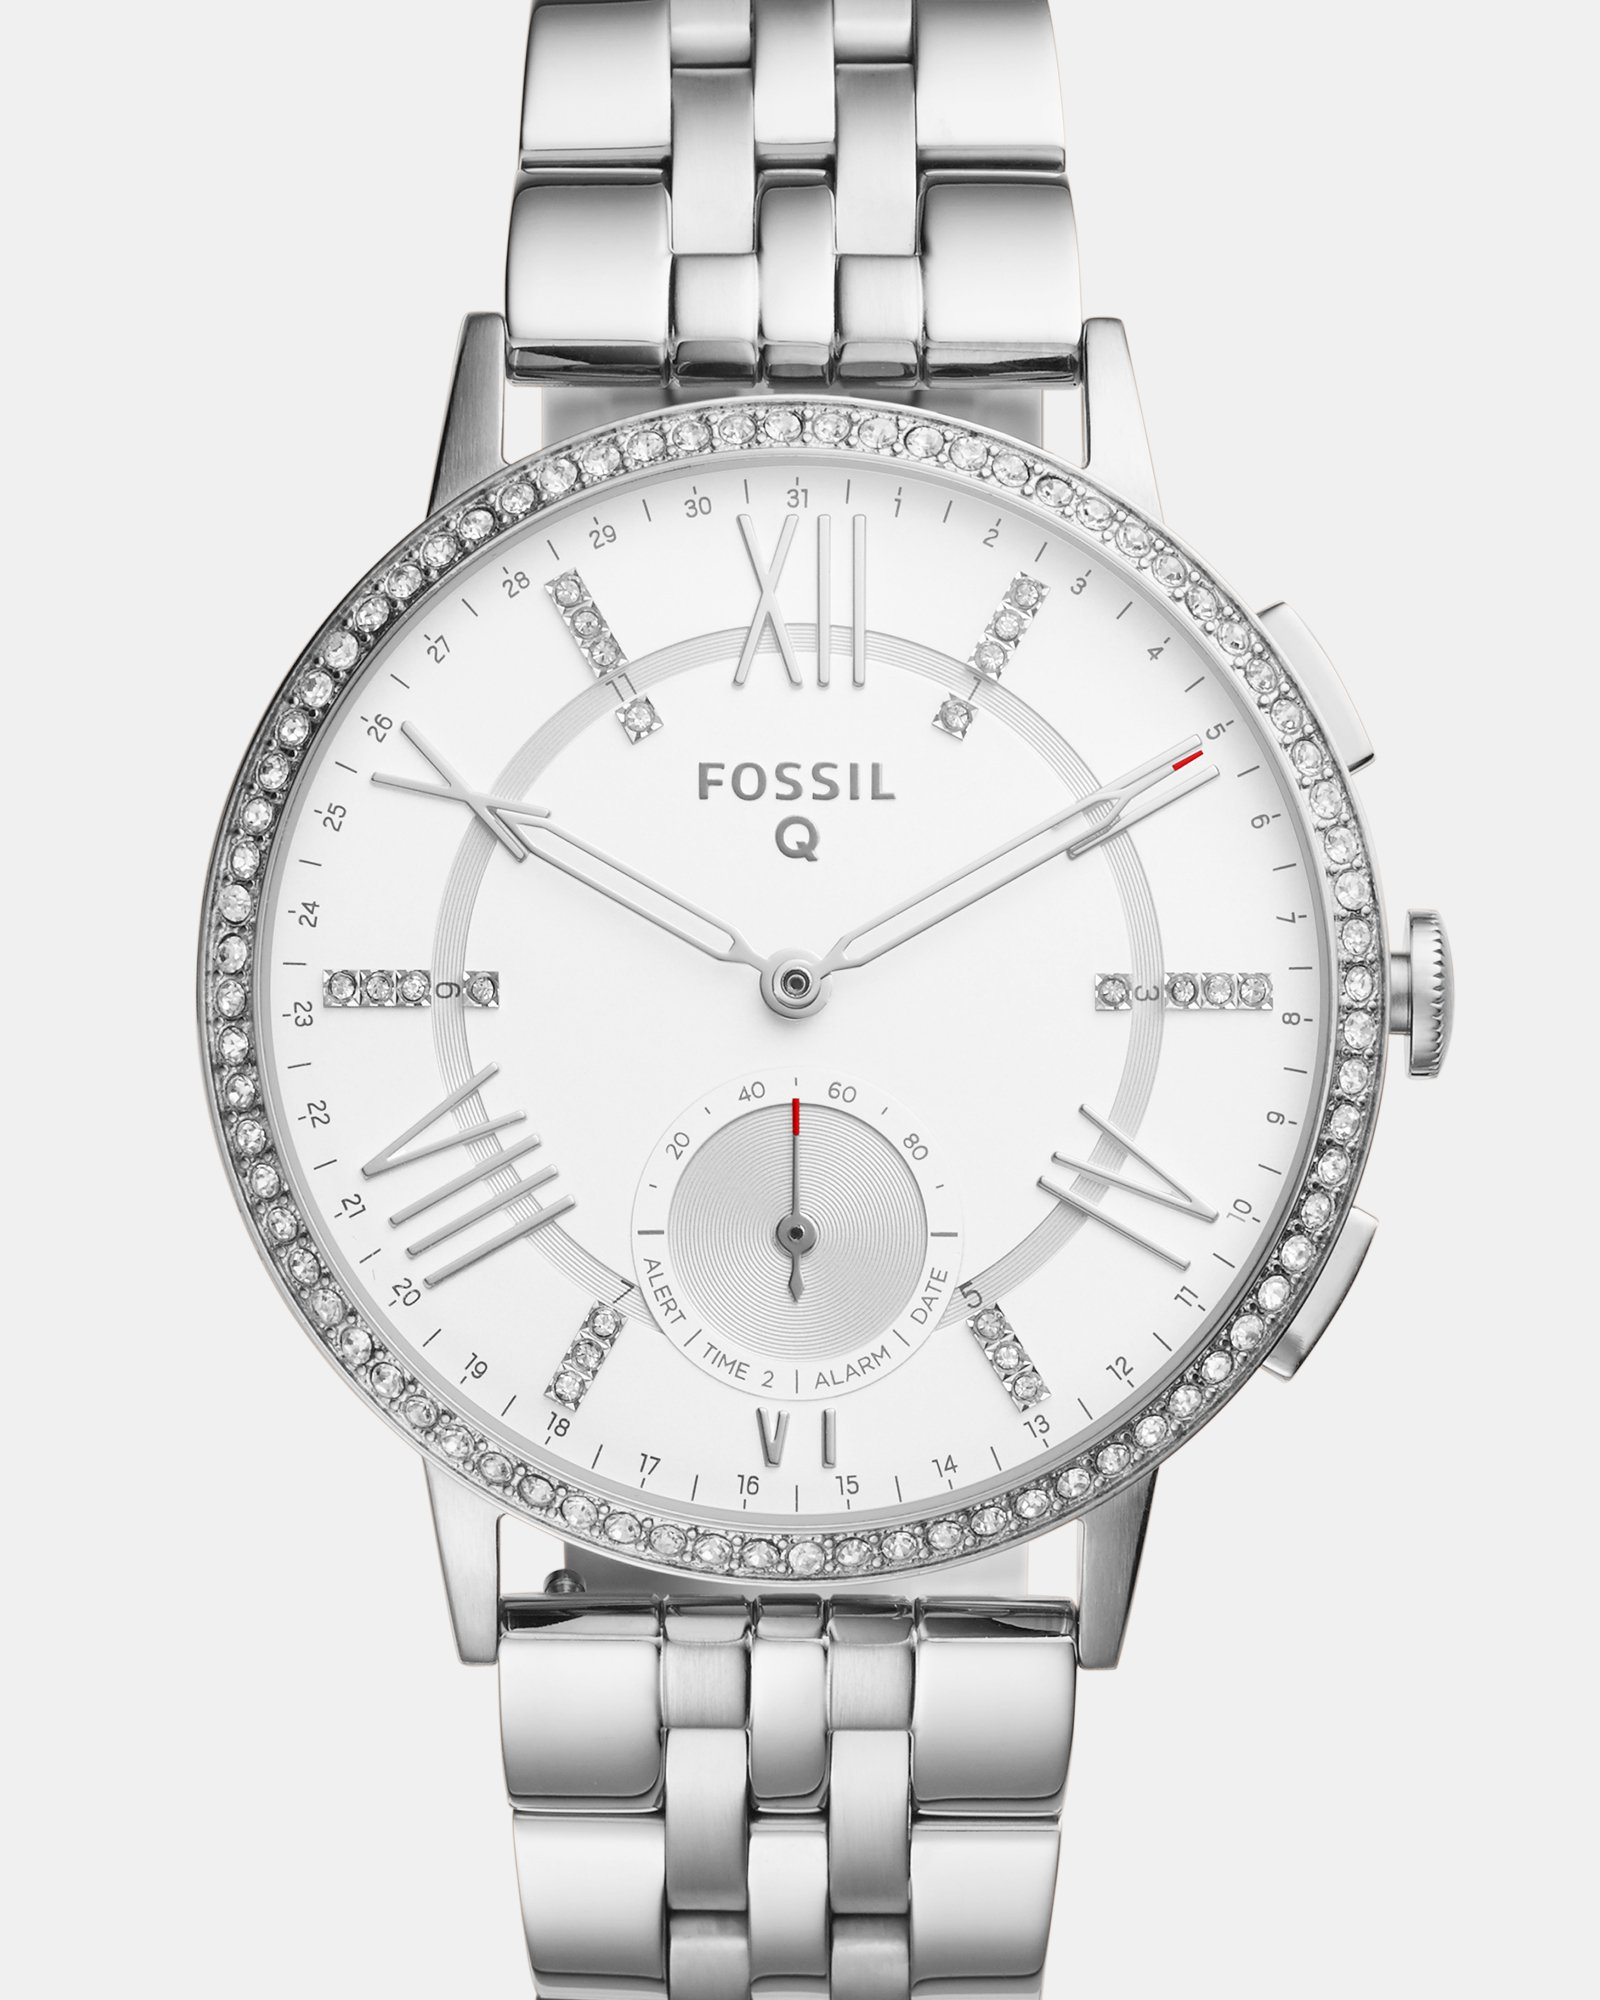 Fossil Hybrid Smartwatch - Q Gazer Stainless Steel by Fossil